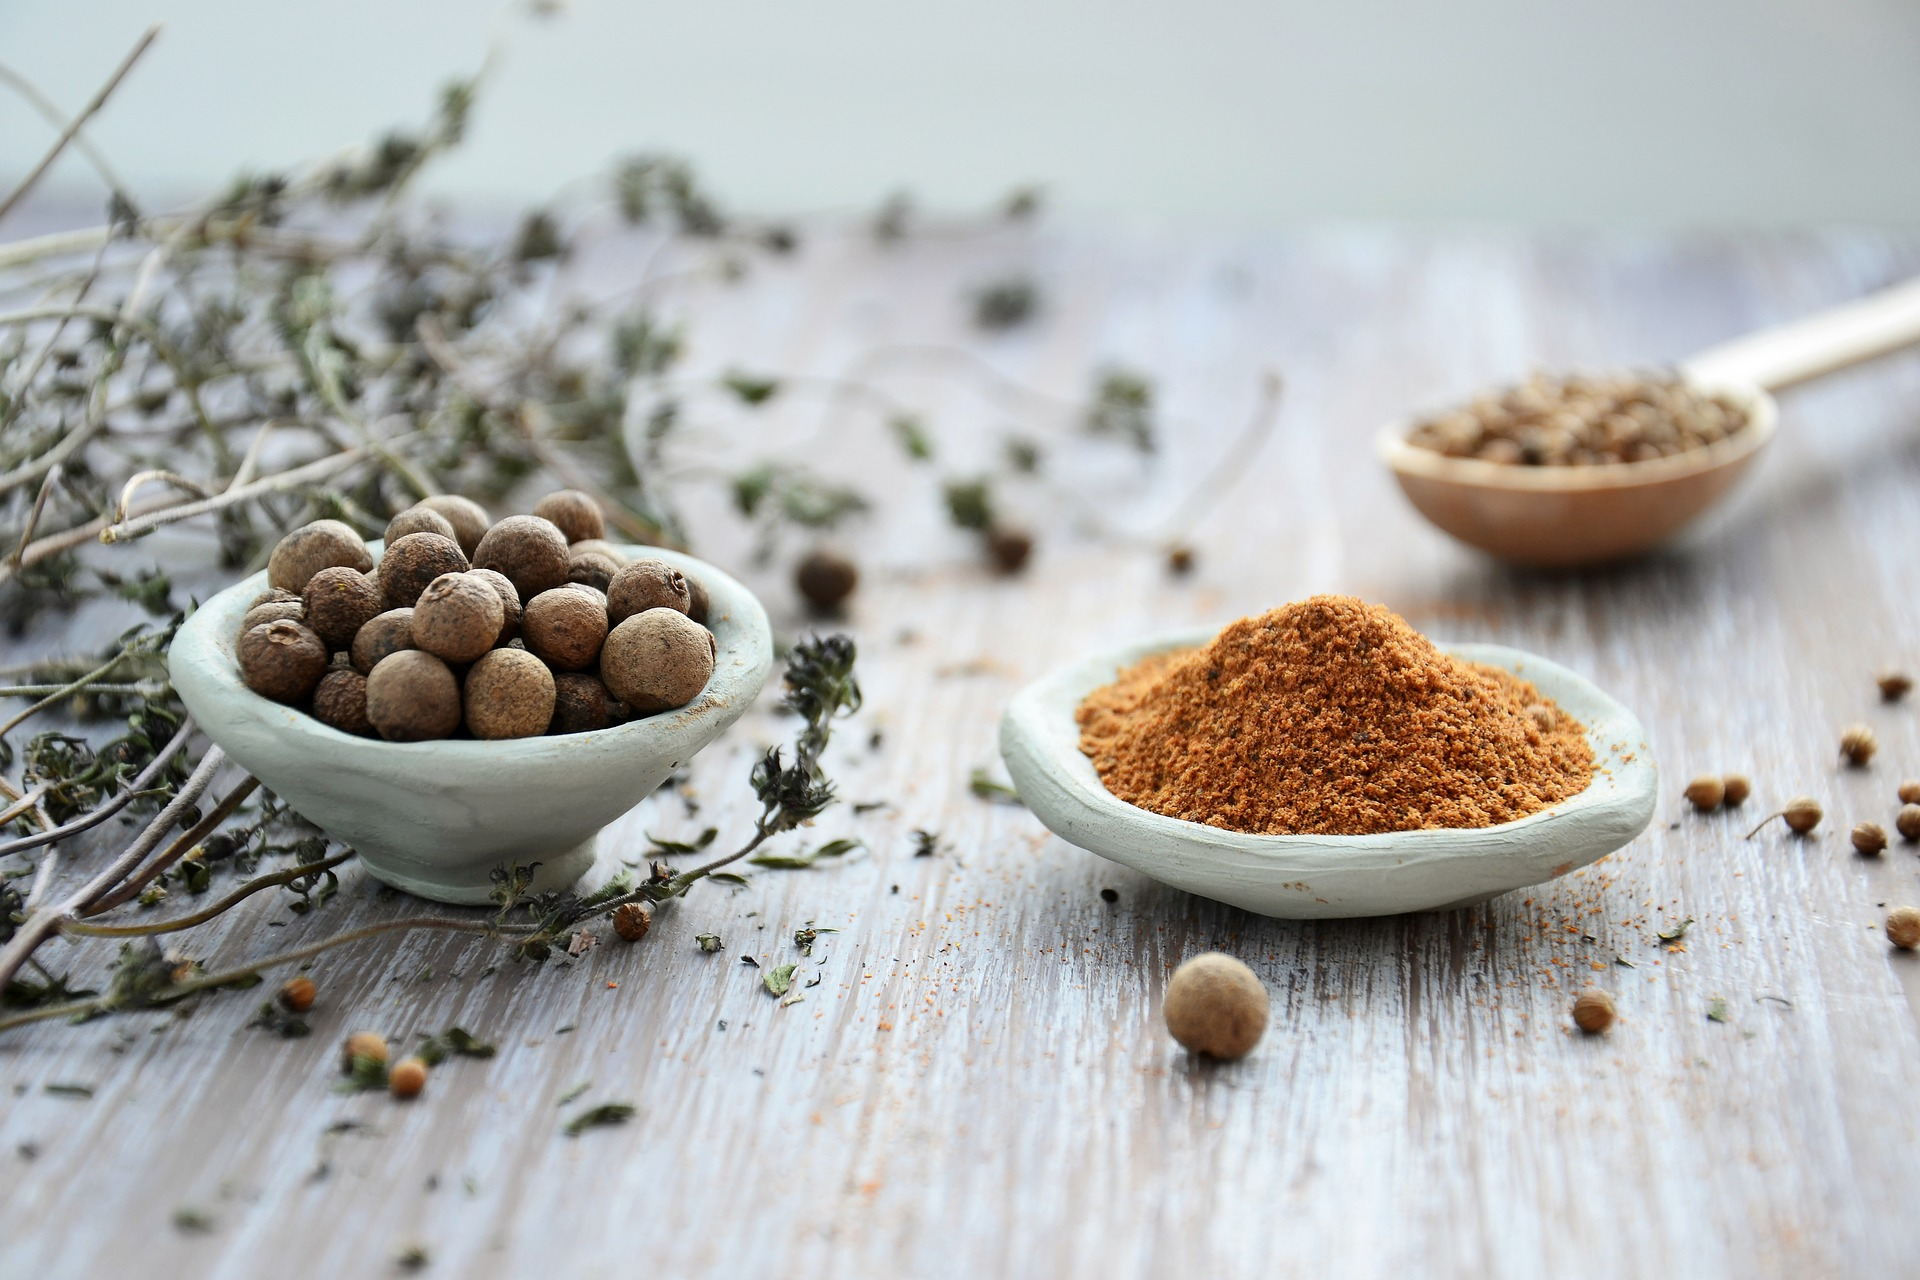 spices-2902439_1920.jpg